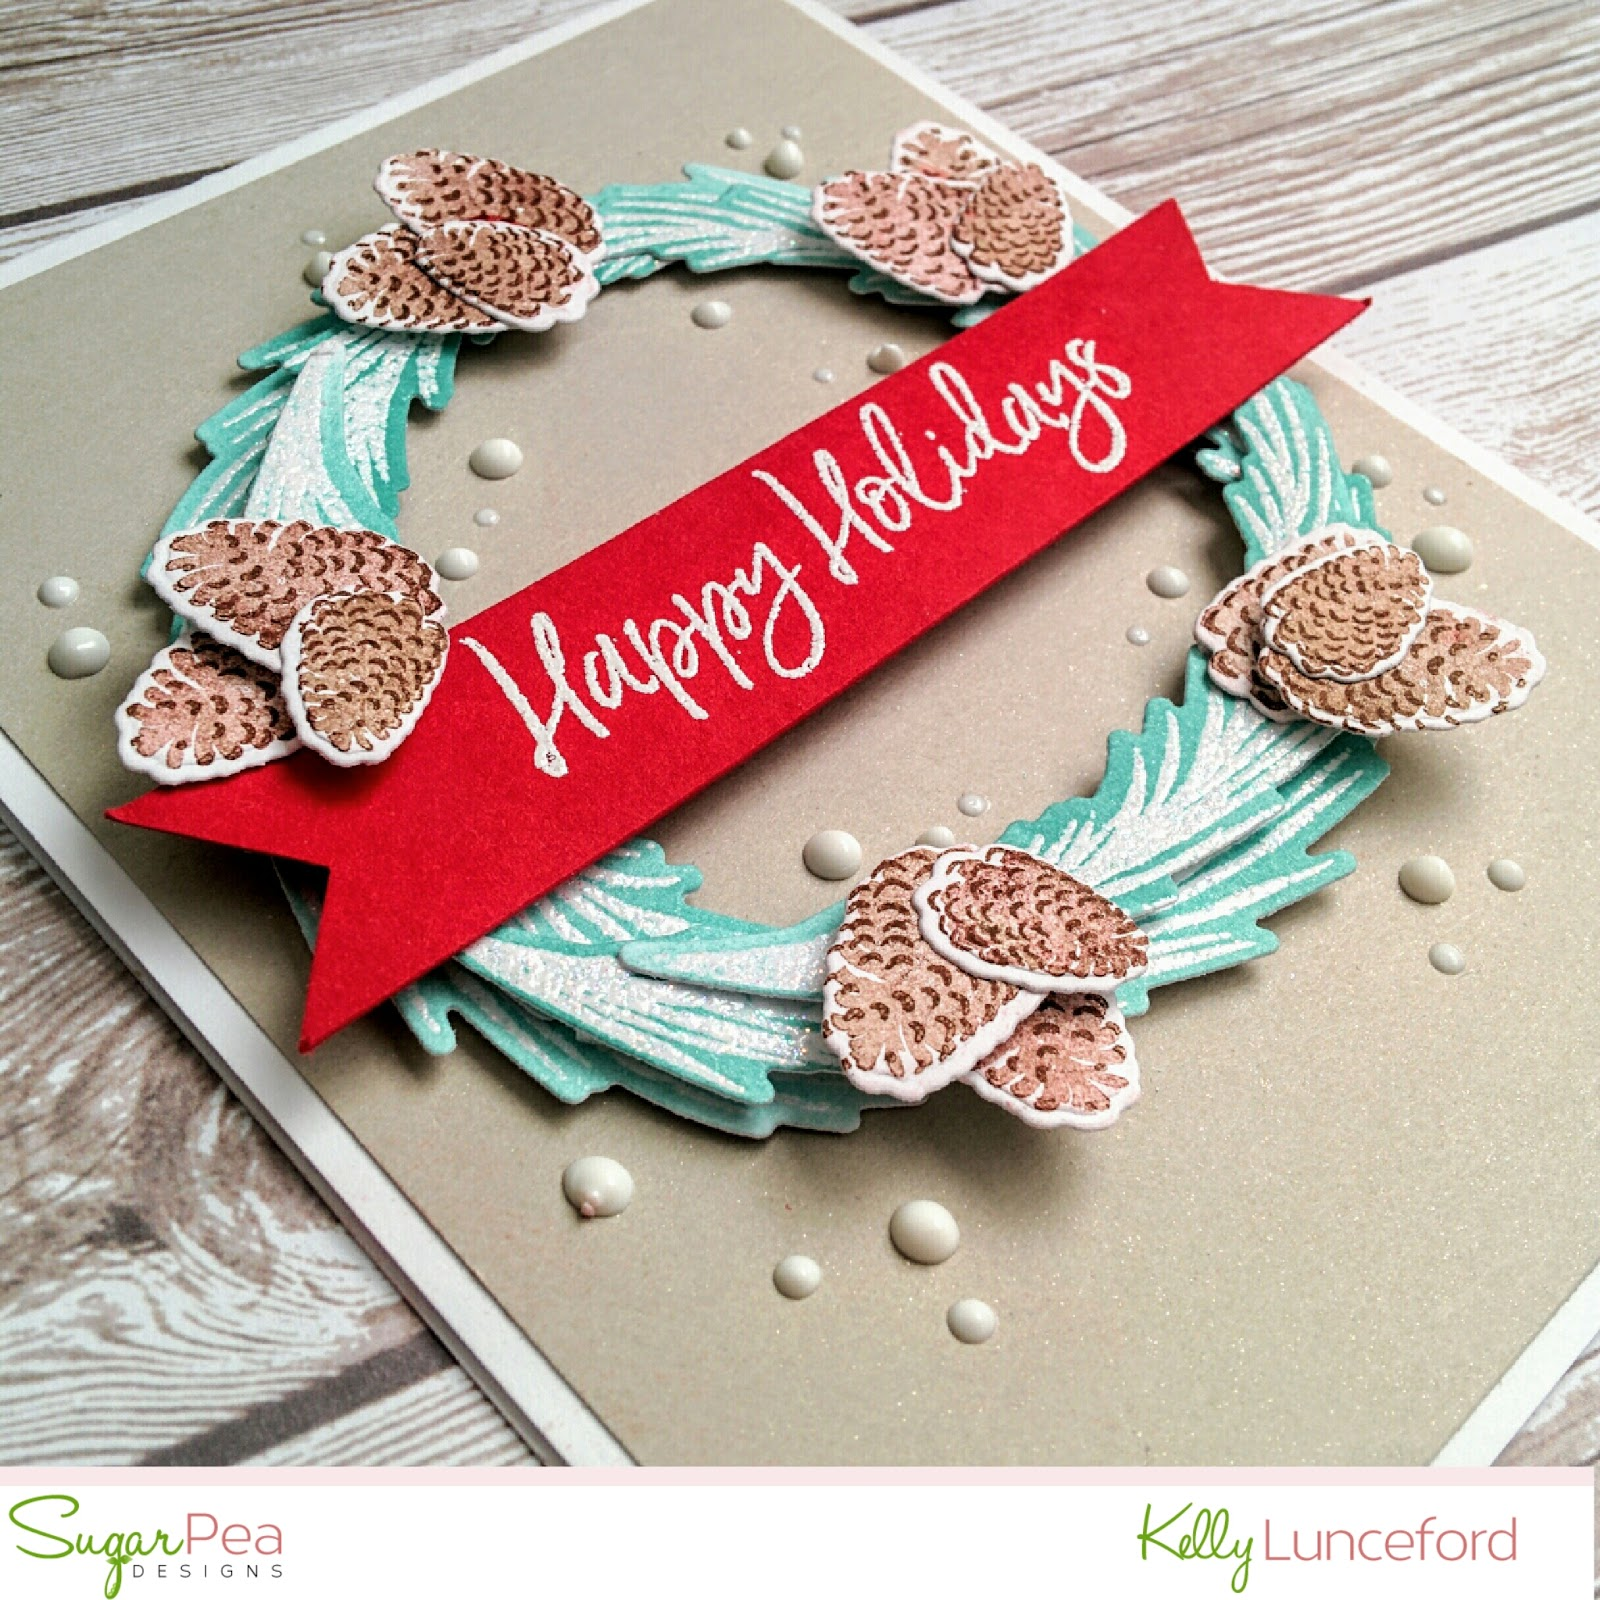 Flutter by atomicbutterfly sugarpea designs release week flurry for this card i heat embossed the large pine bough image using nuvo glitter embossing powder and then ink blended around each branch using distress ink kristyandbryce Images